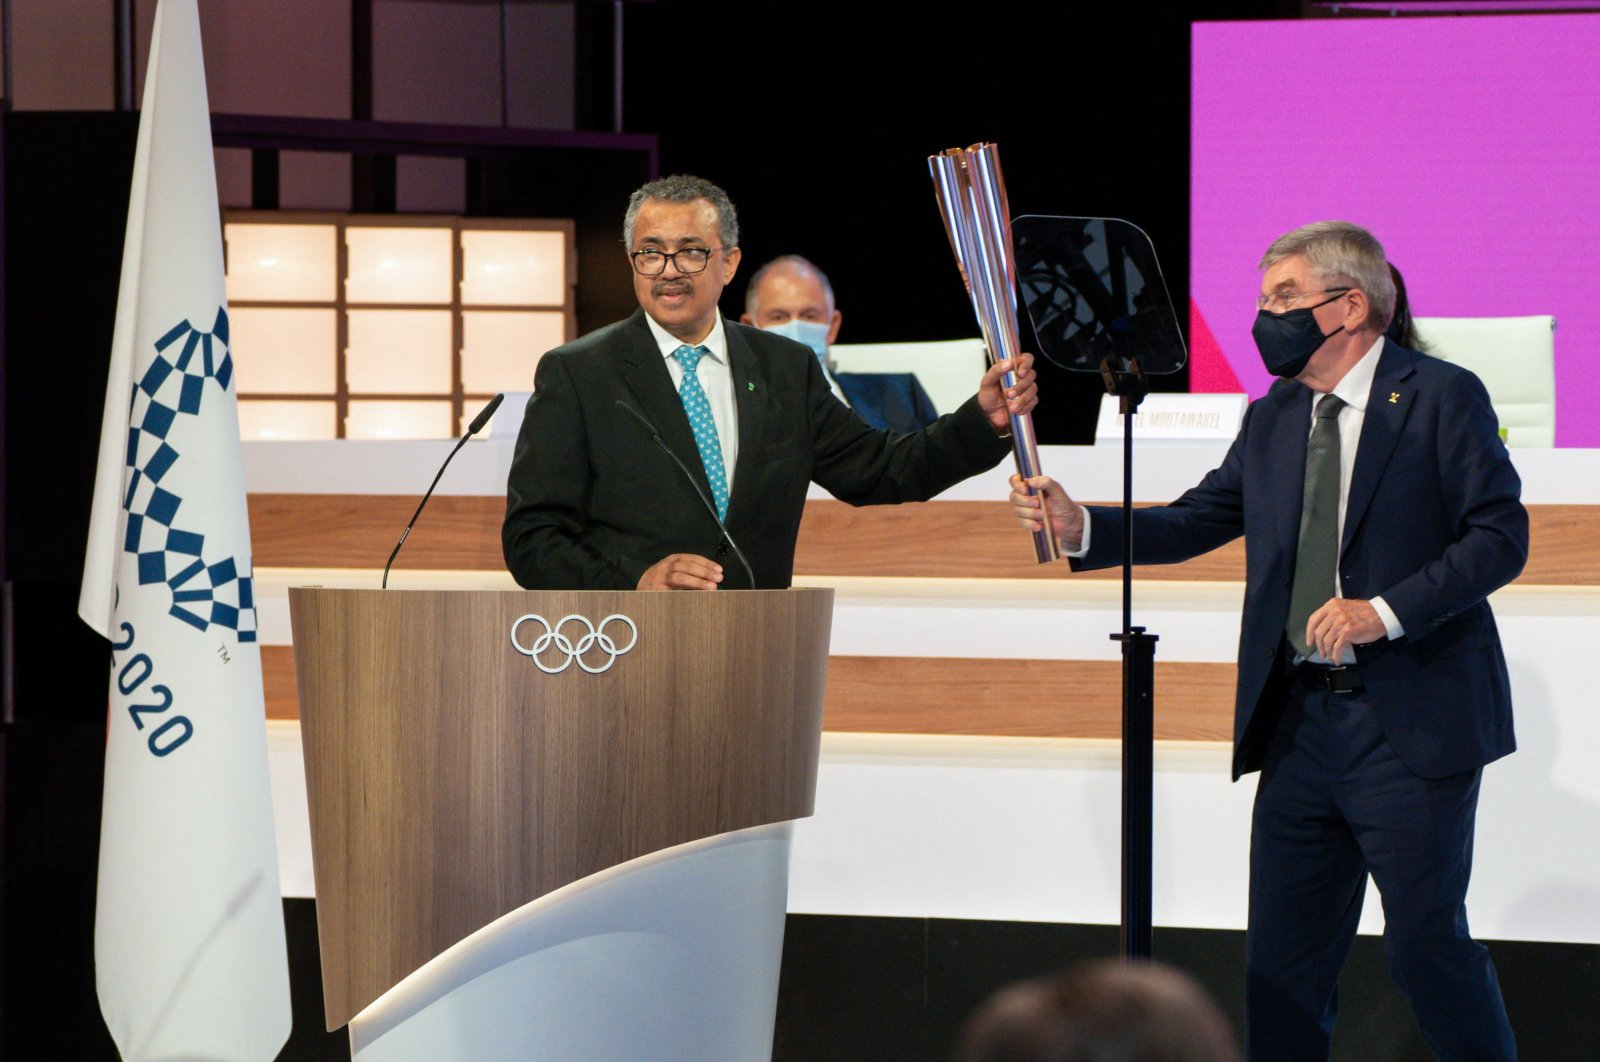 World Health Organization (WHO) Director-General Tedros Adhanom Ghebreyesus (L) receiving the Olympic torch from International Olympic Committee (IOC) President Thomas Bach during the second day of a IOC Session in Tokyo, Japan, July 21, 2021. (AFP Photo)